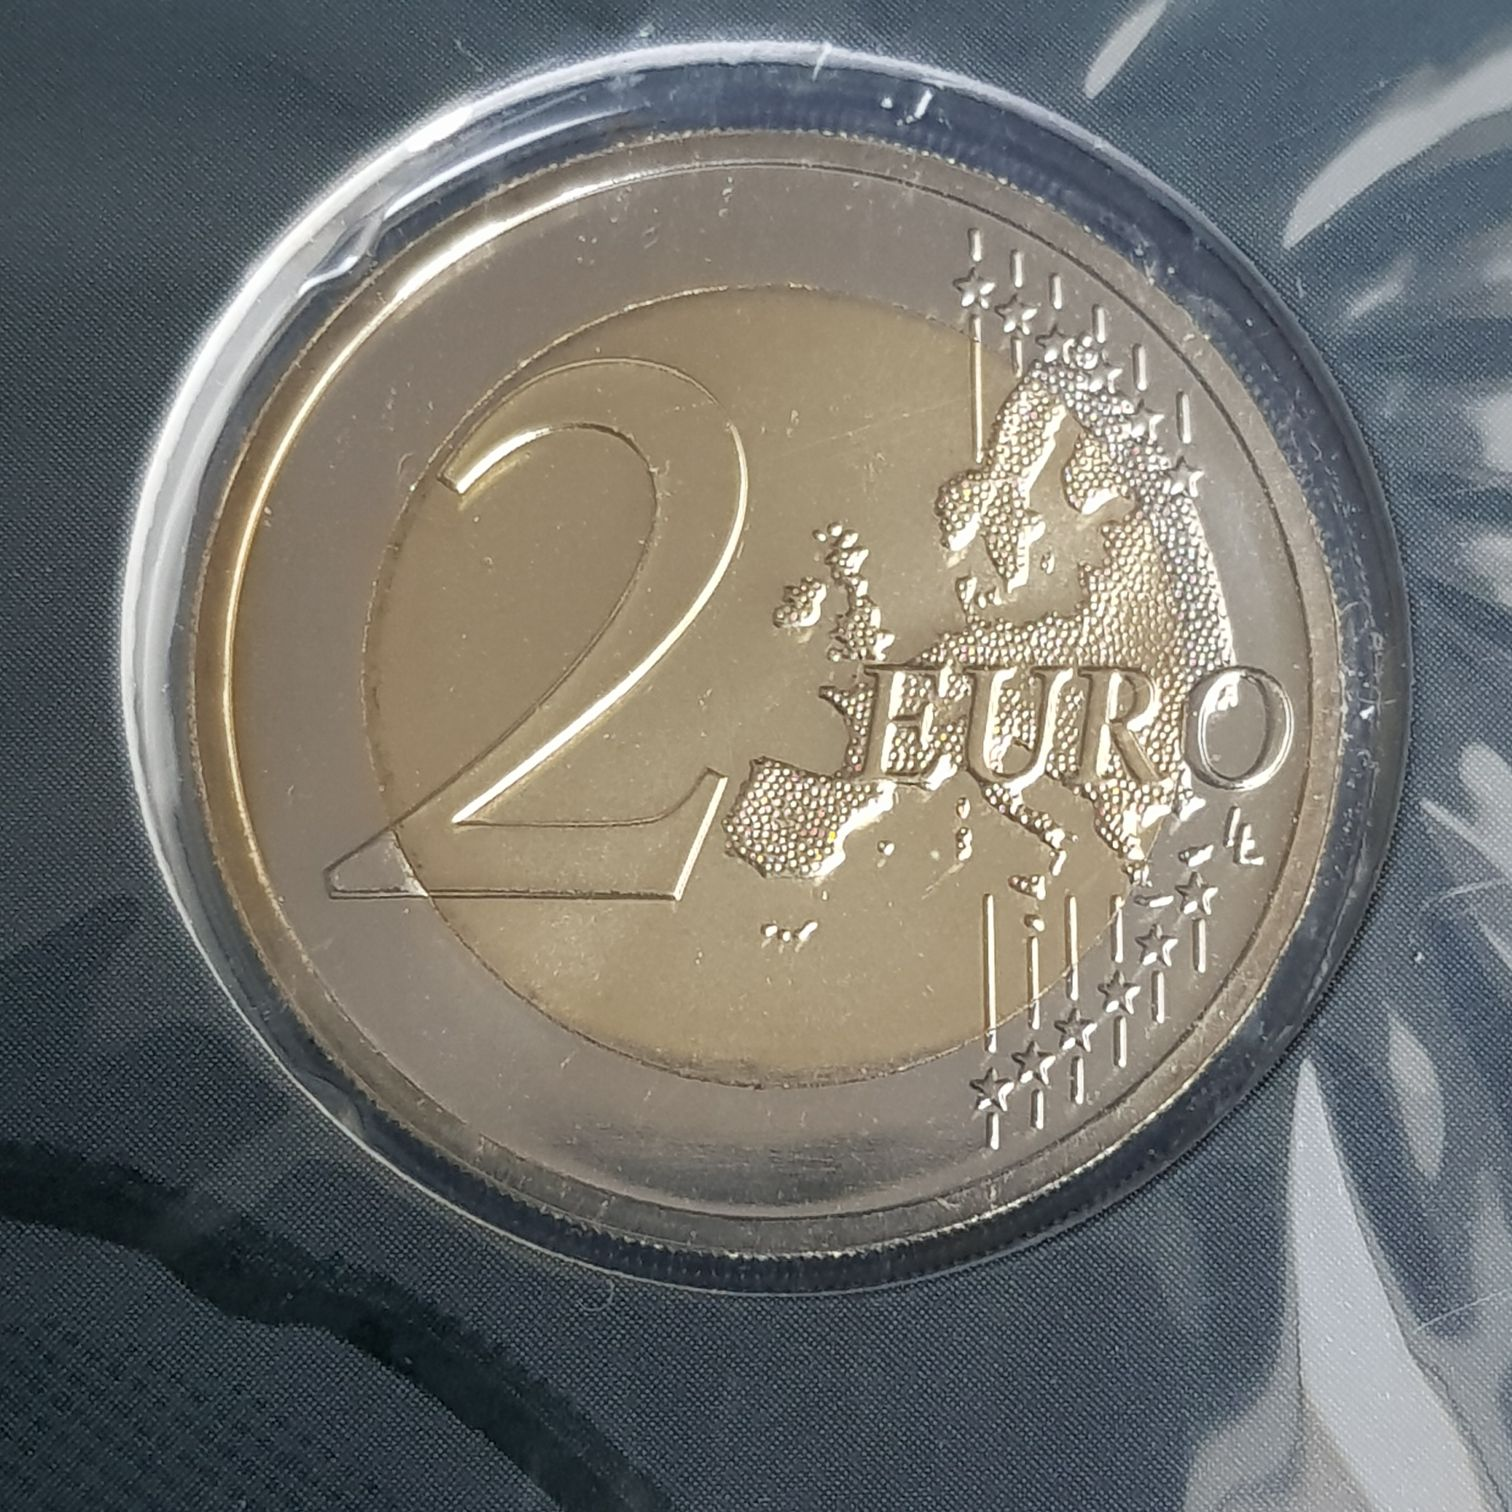 2 Euros Coin - $2 (2015) front image (front cover)